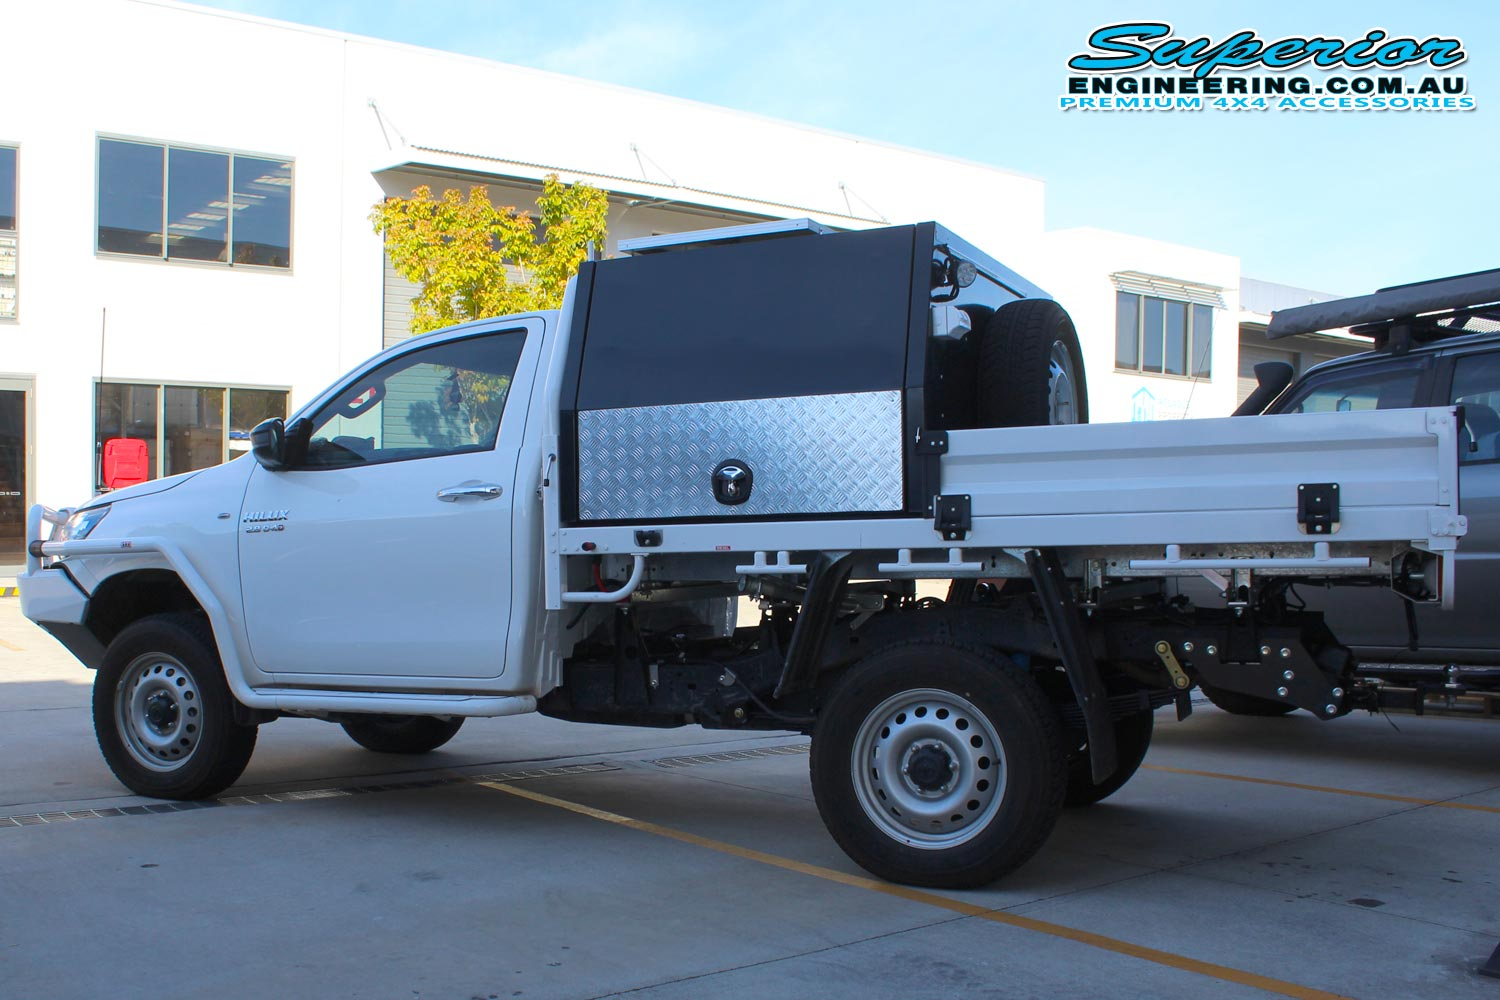 Left side view of a white Toyota Hilux Revo (single cab) fitted with a 2 inch Airbag Man leaf spring helper kit and Dual air control kit